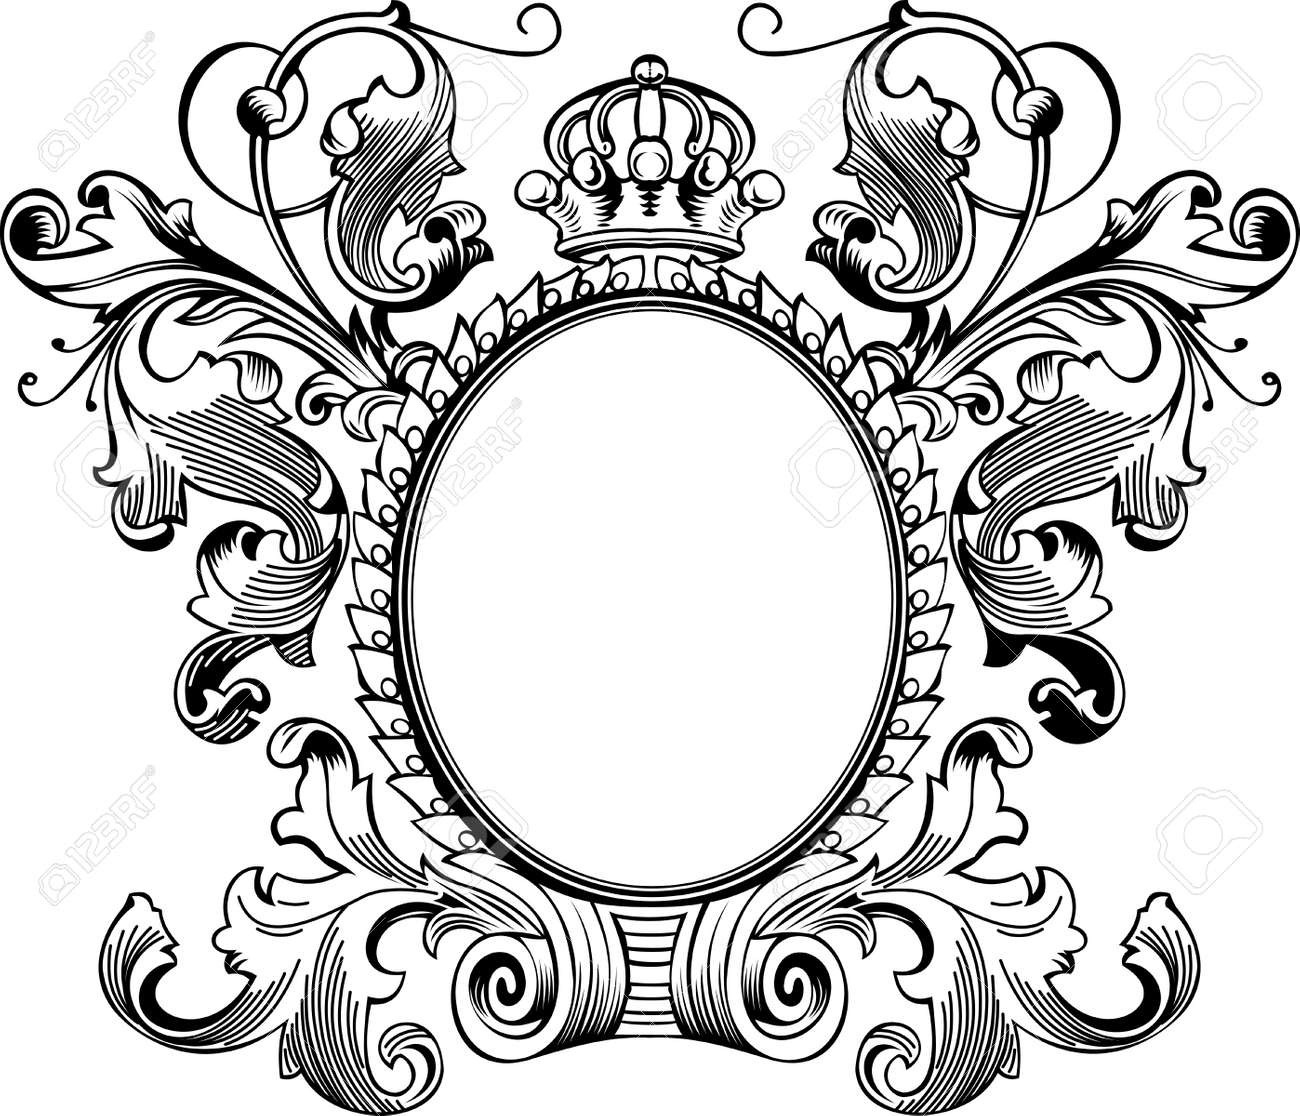 antique frame engraving scalable and editable vector illustration stock vector 8336523